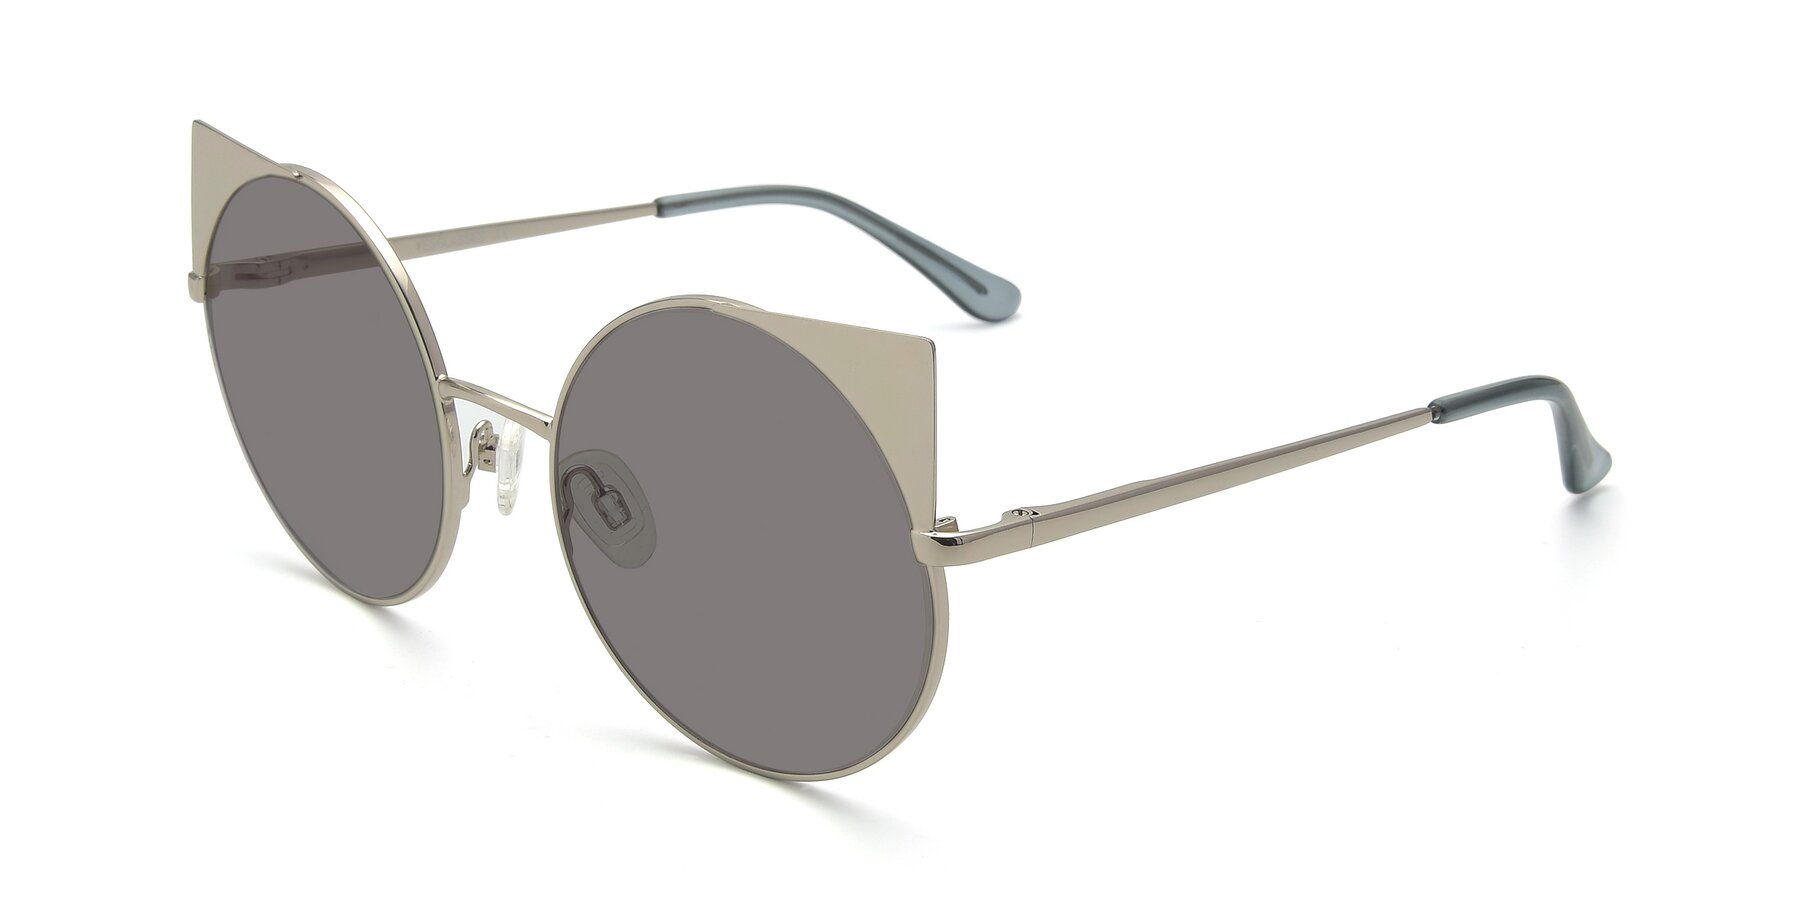 Angle of SSR1955 in Silver with Medium Gray Tinted Lenses